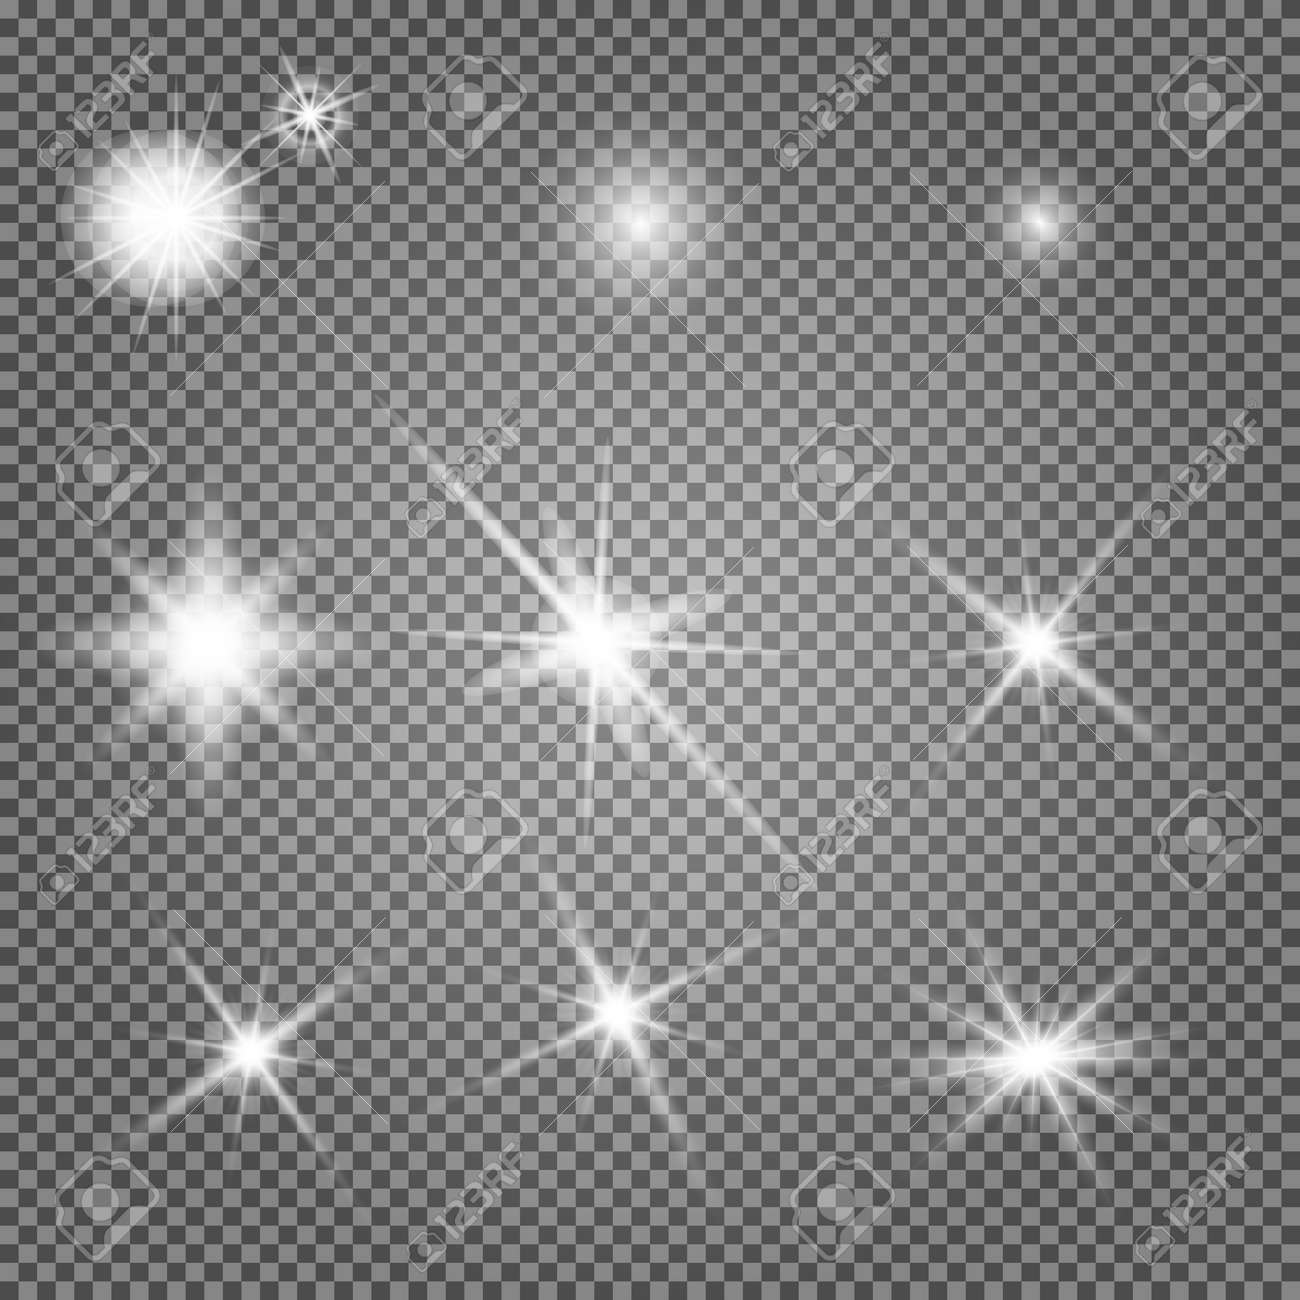 Star light. Starburst glow effect, vector sparkle. Flash shine, glowing bright on transparent background. Abstract glitter decoration, shiny sunlight ray, magic disco element. Special spark - 167222911